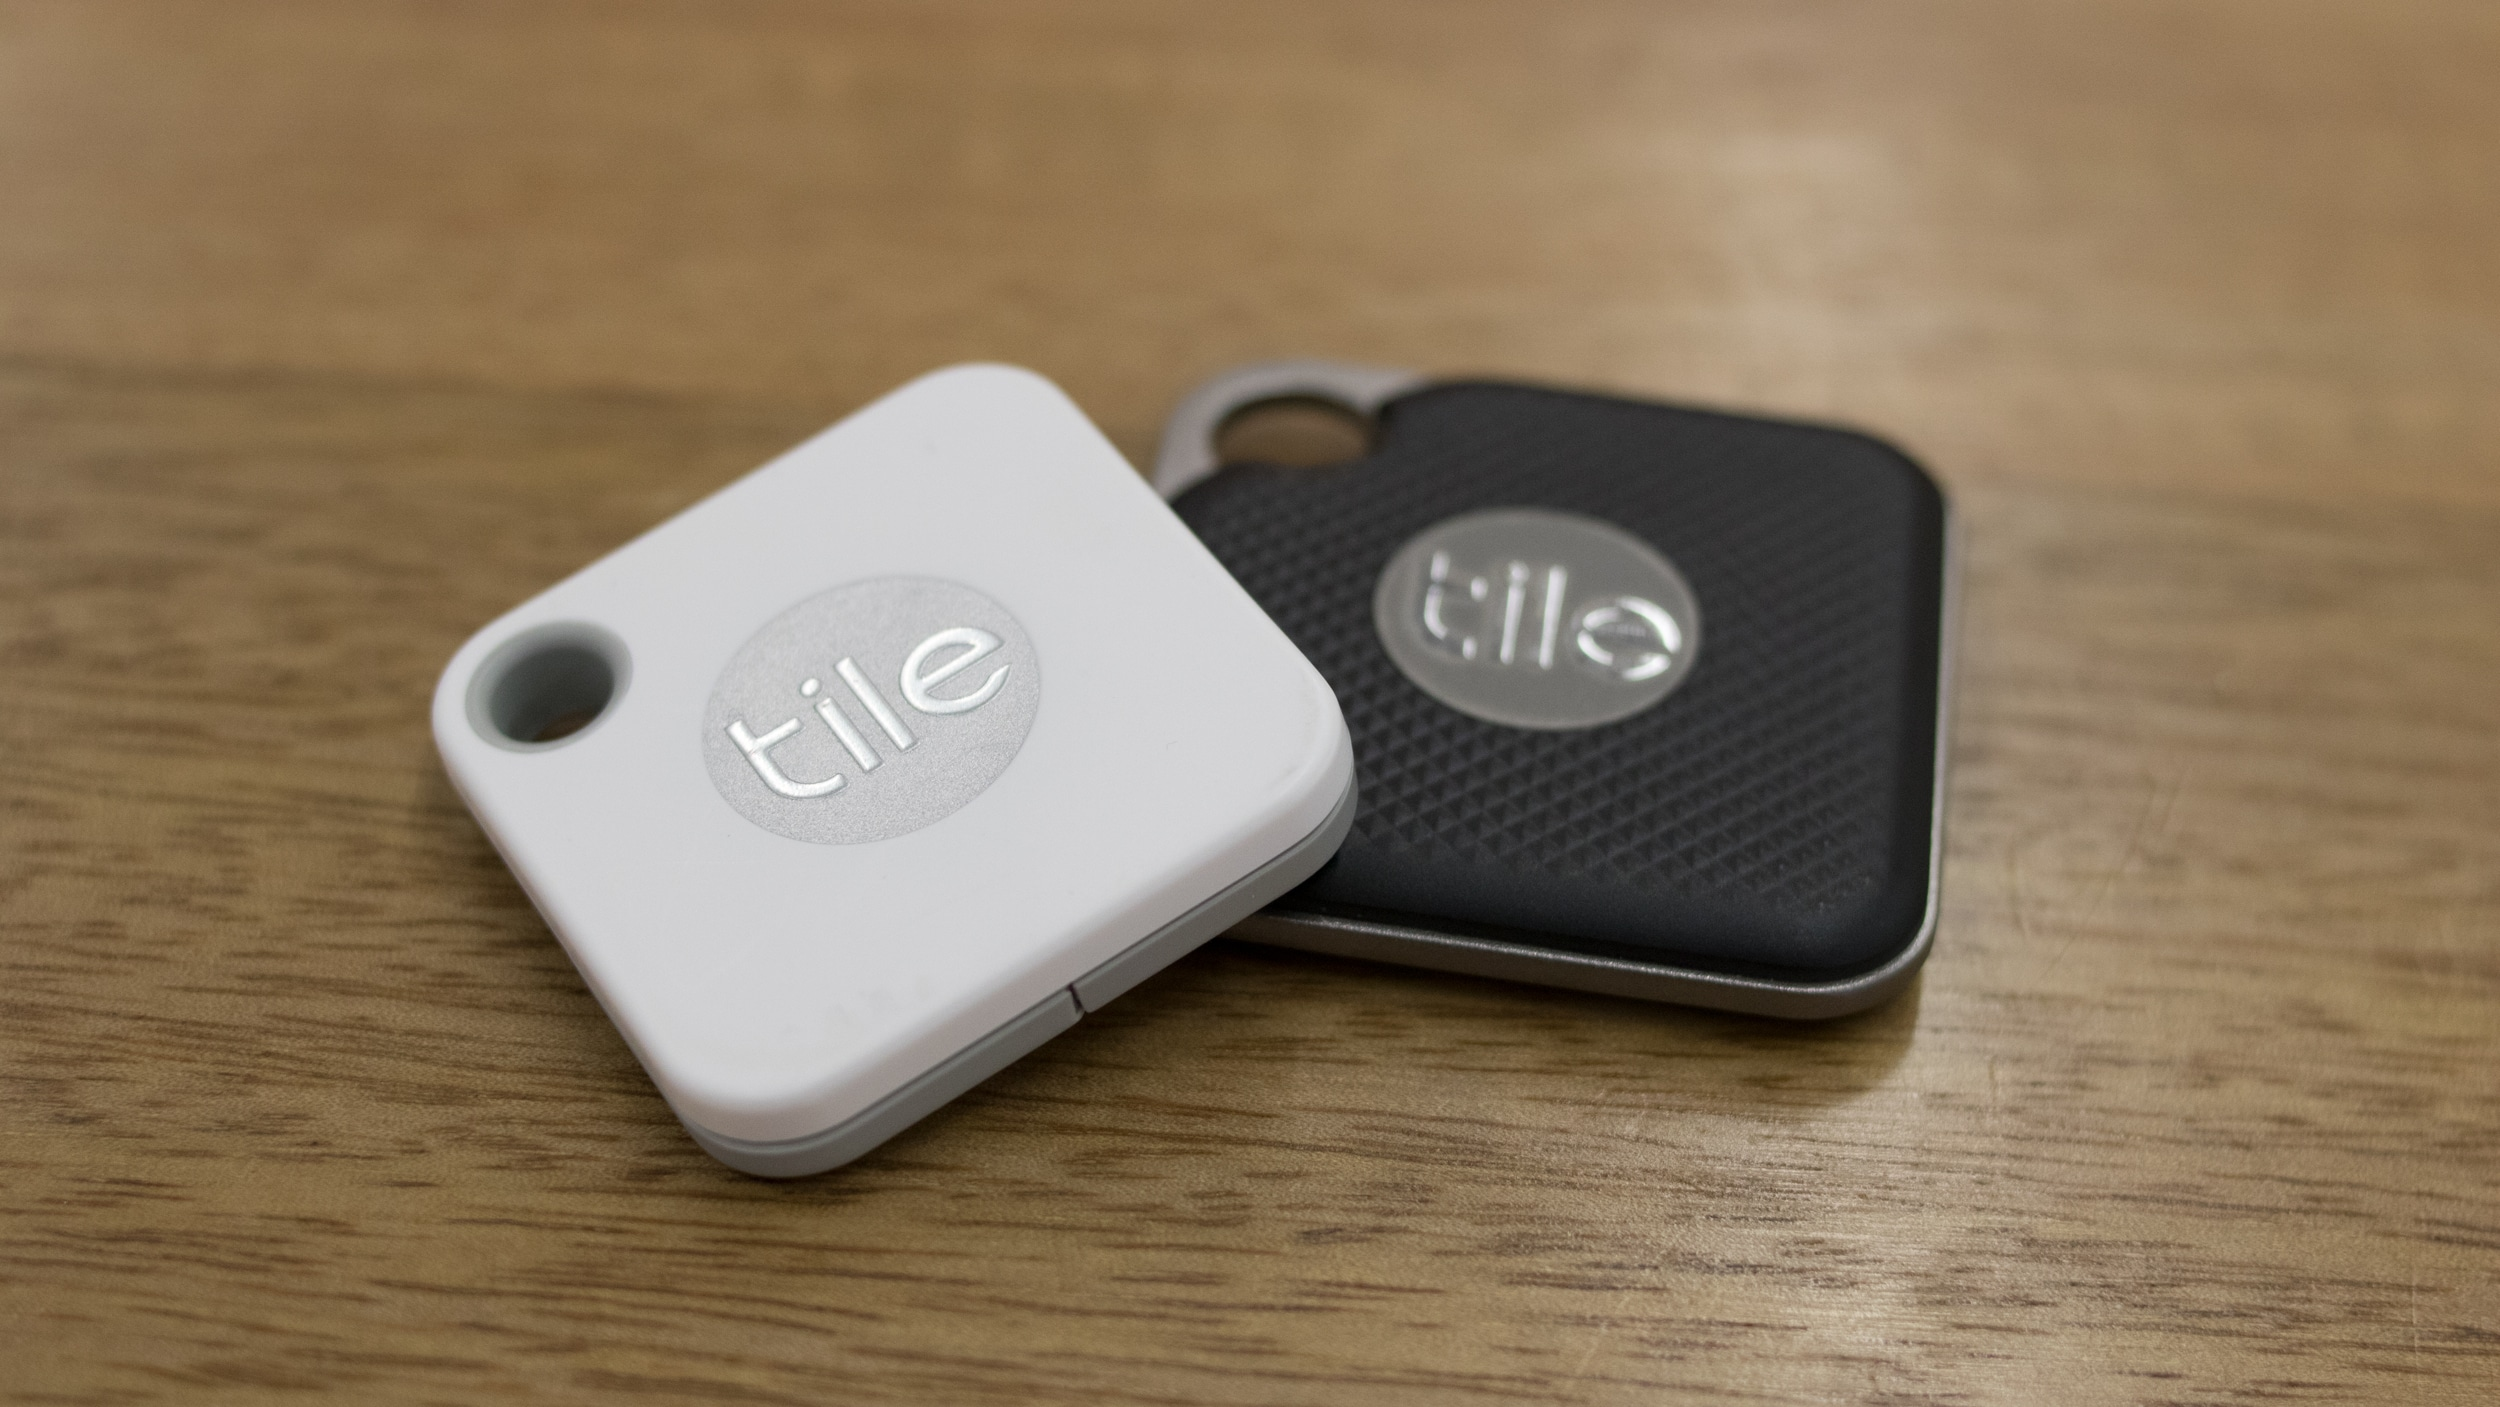 tile-pro-keyfinder-bluetooth-tracker